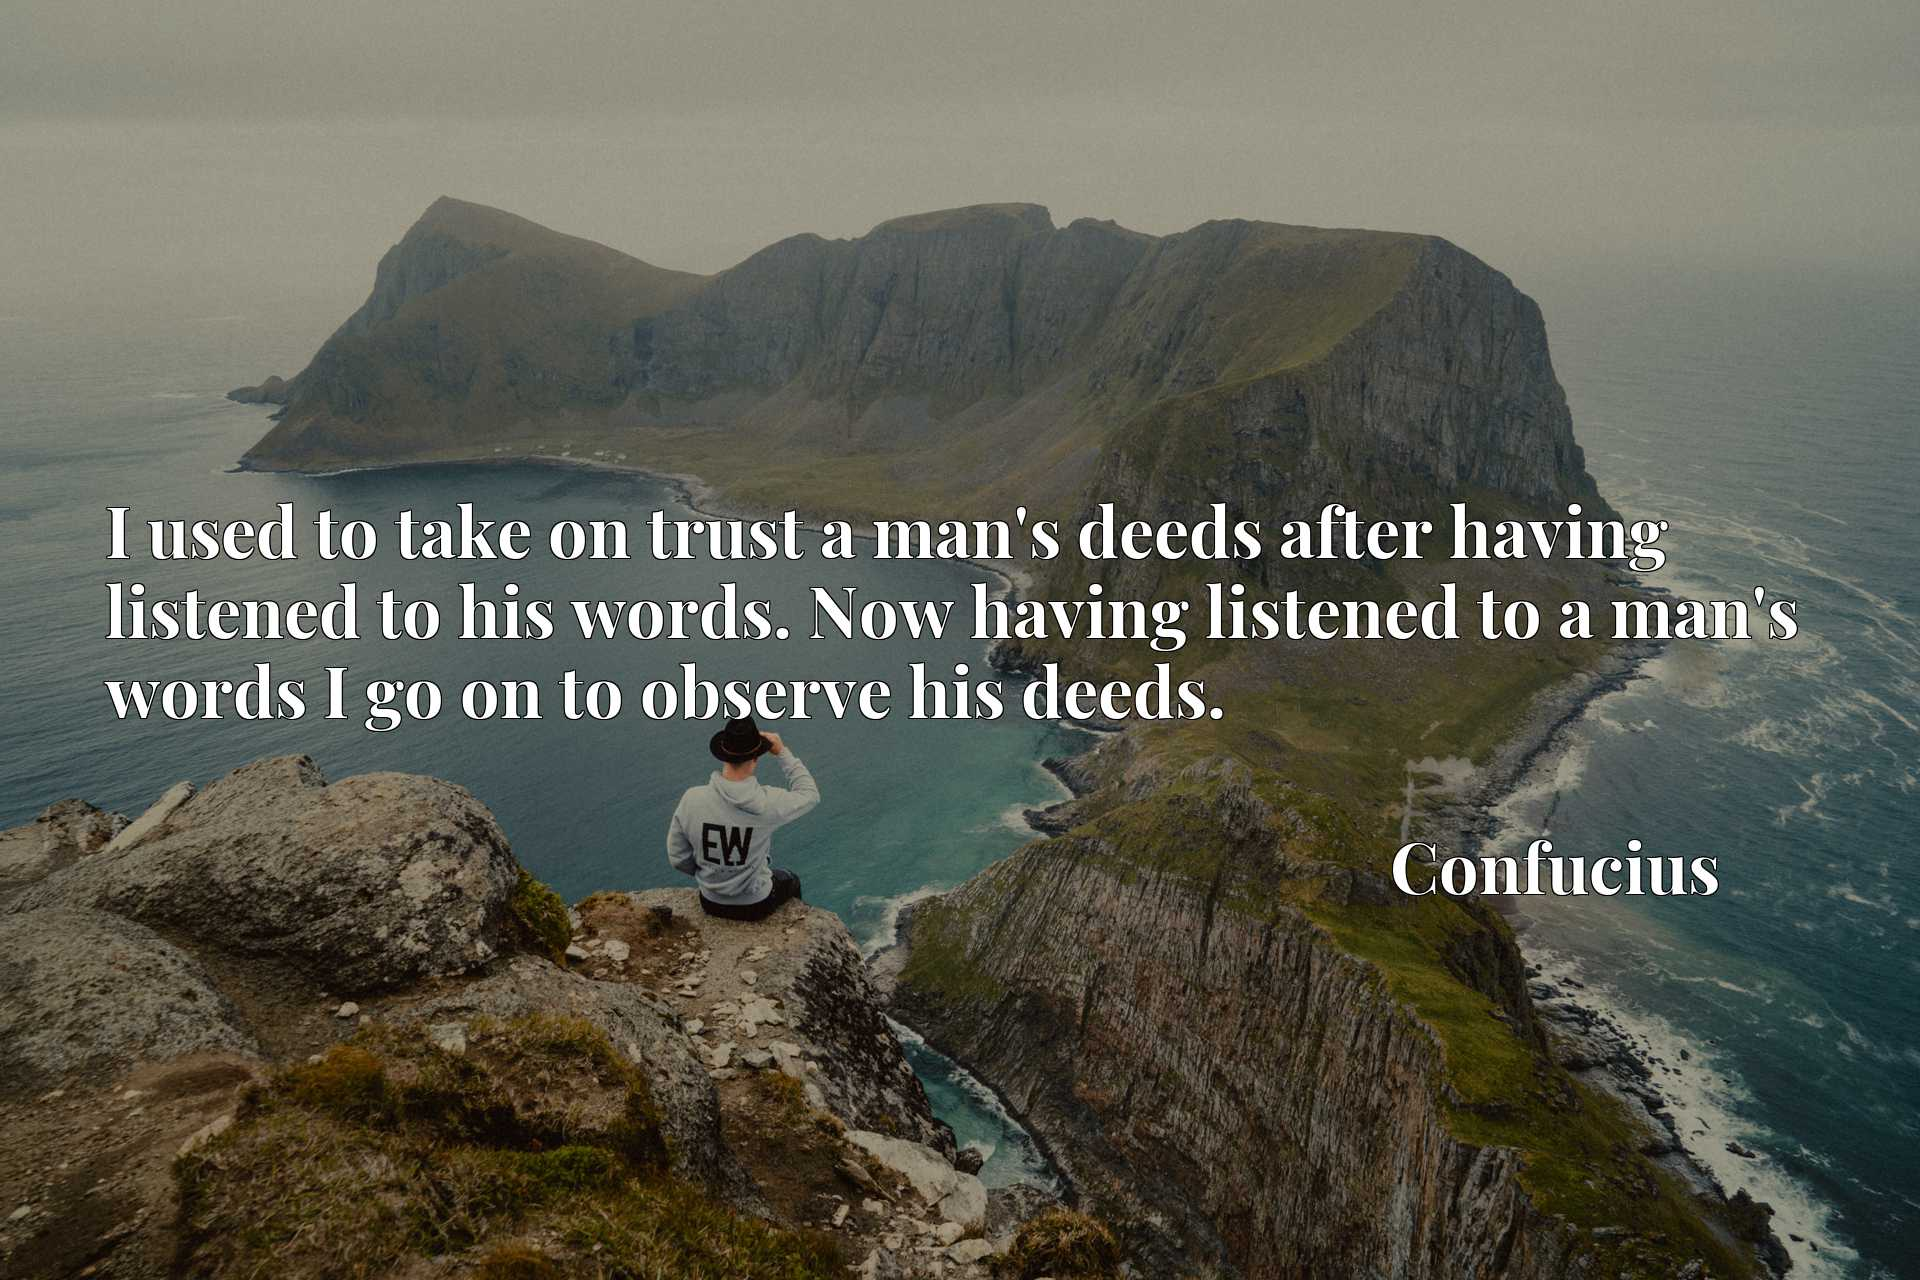 I used to take on trust a man's deeds after having listened to his words. Now having listened to a man's words I go on to observe his deeds.